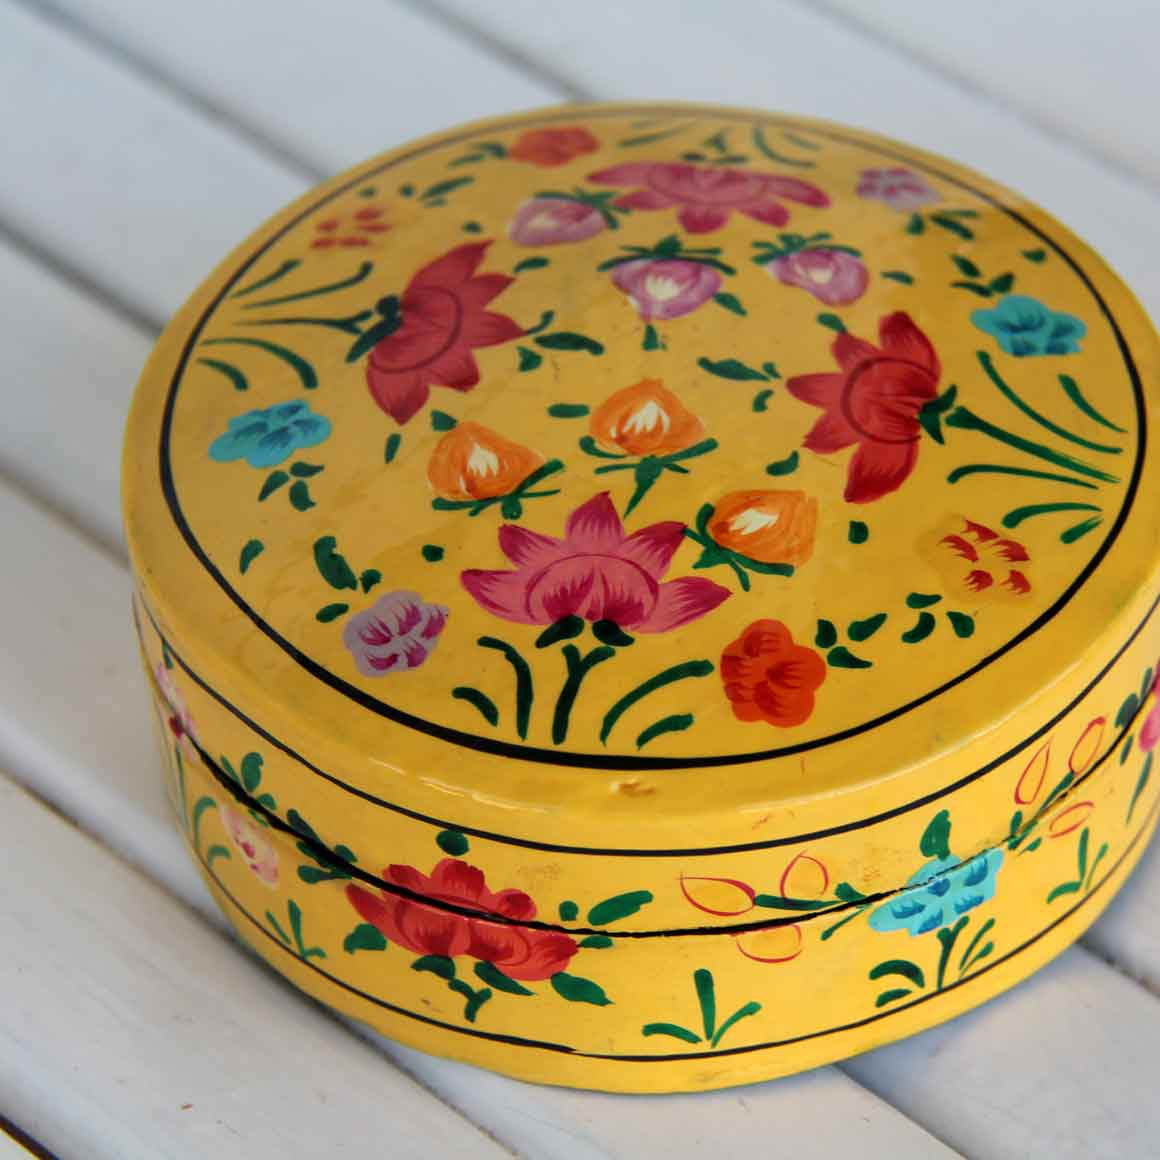 Fair Trade Ethical Round Coaster Box Set Yellow Flowers